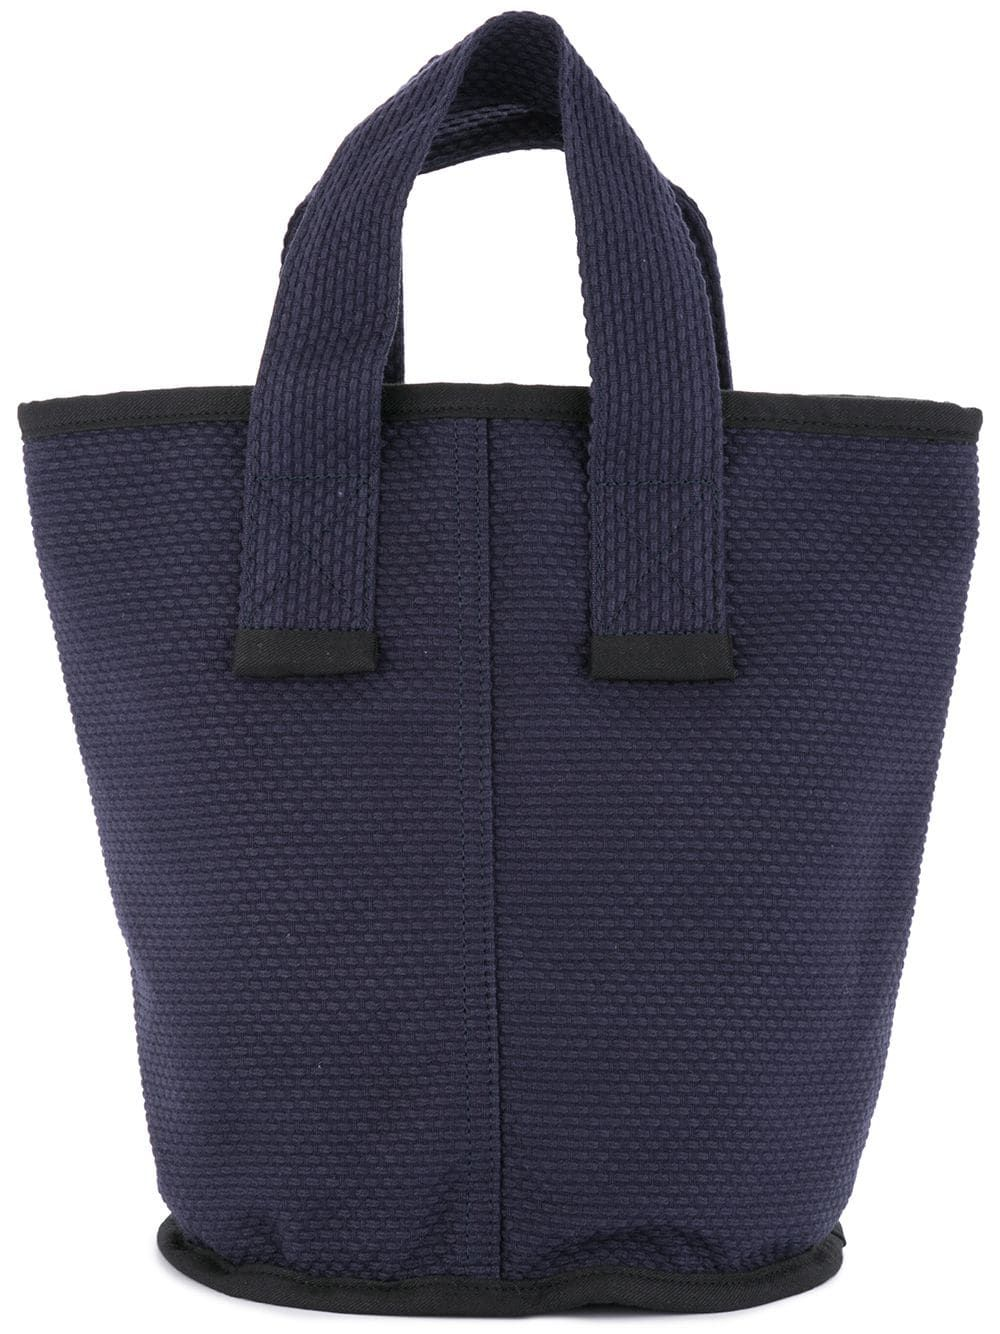 Cabas Small Laundry Tote Small Laundry Laundry Tote Bag